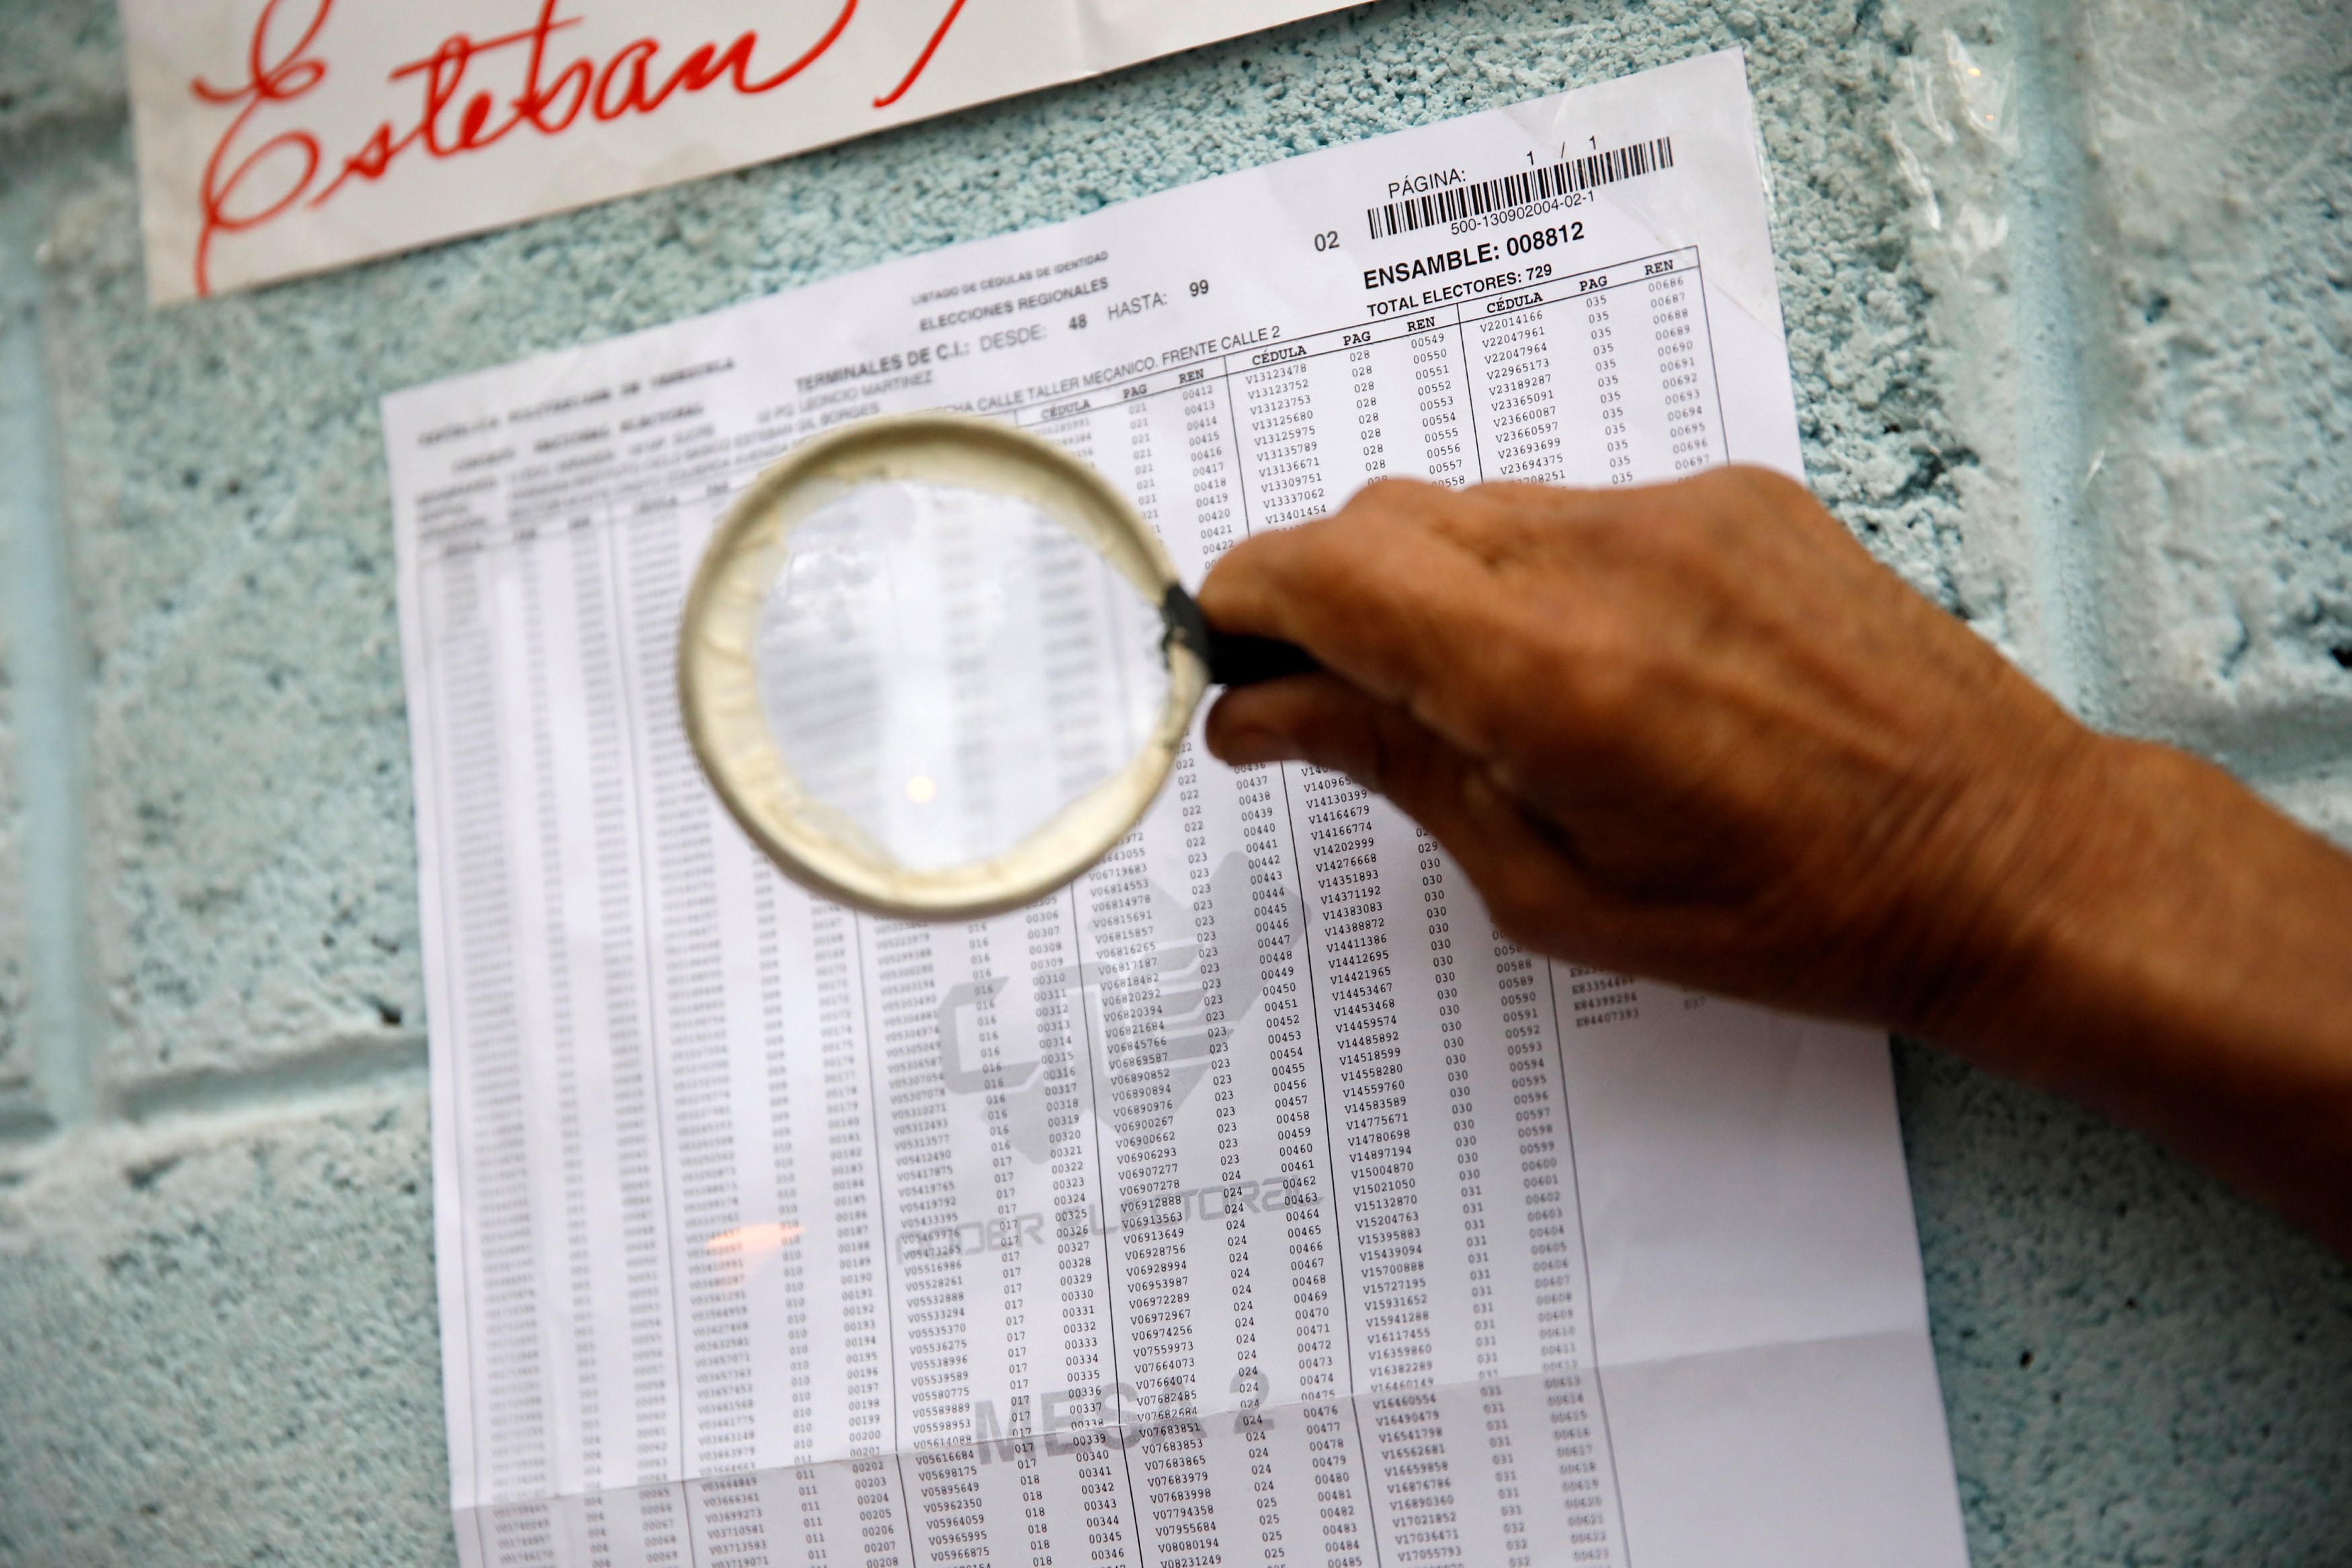 A Venezuelan citizen uses a magnifying glass to check a list in a polling station during a nationwide election for new governors in Caracas, Venezuela, October 15, 2017. REUTERS/Carlos Garcia Rawlins